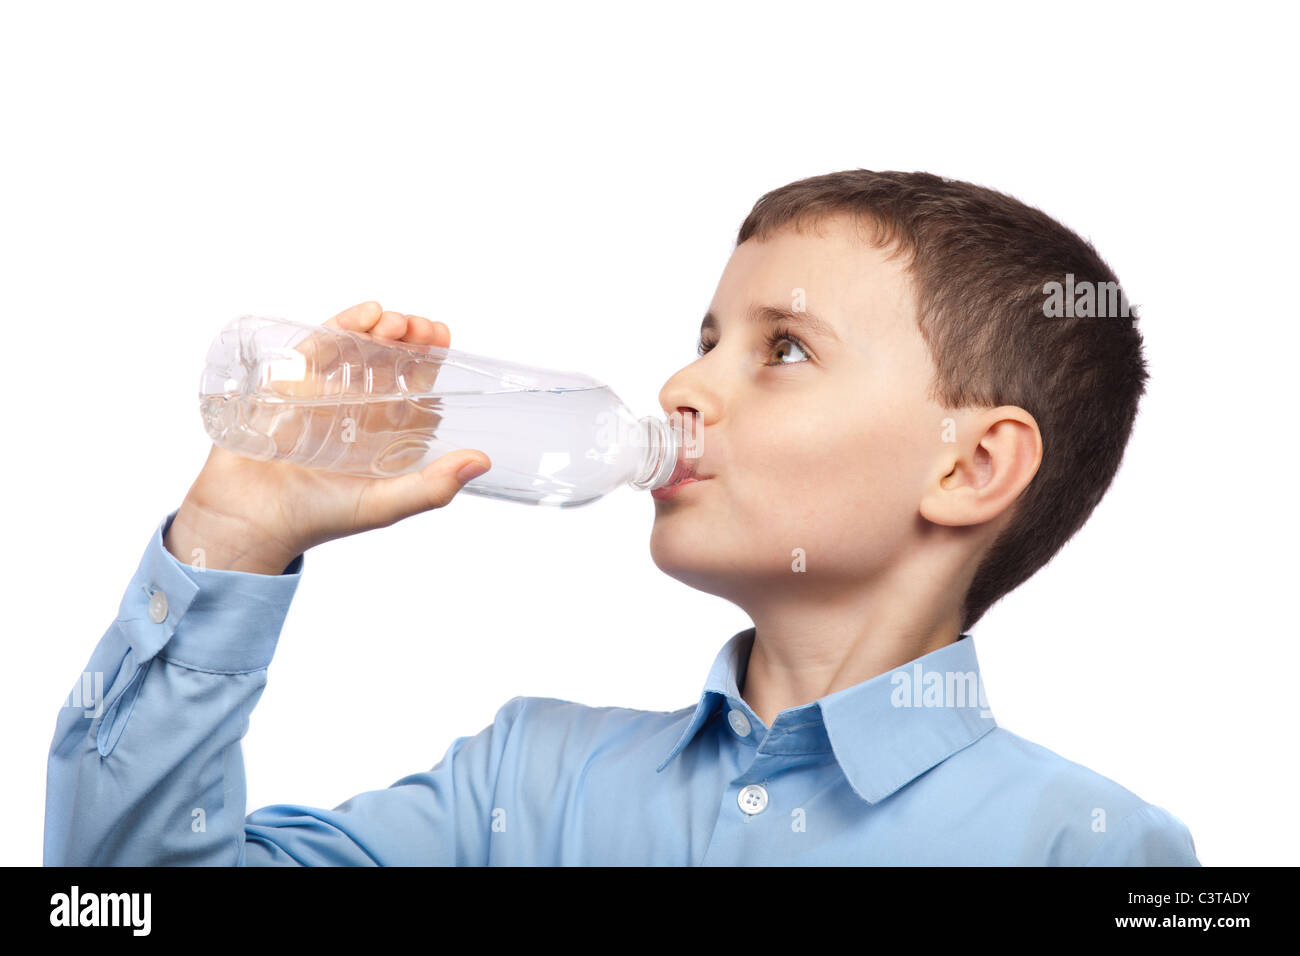 Closeup portrait of a boy drinking water, isolated on white background - Stock Image